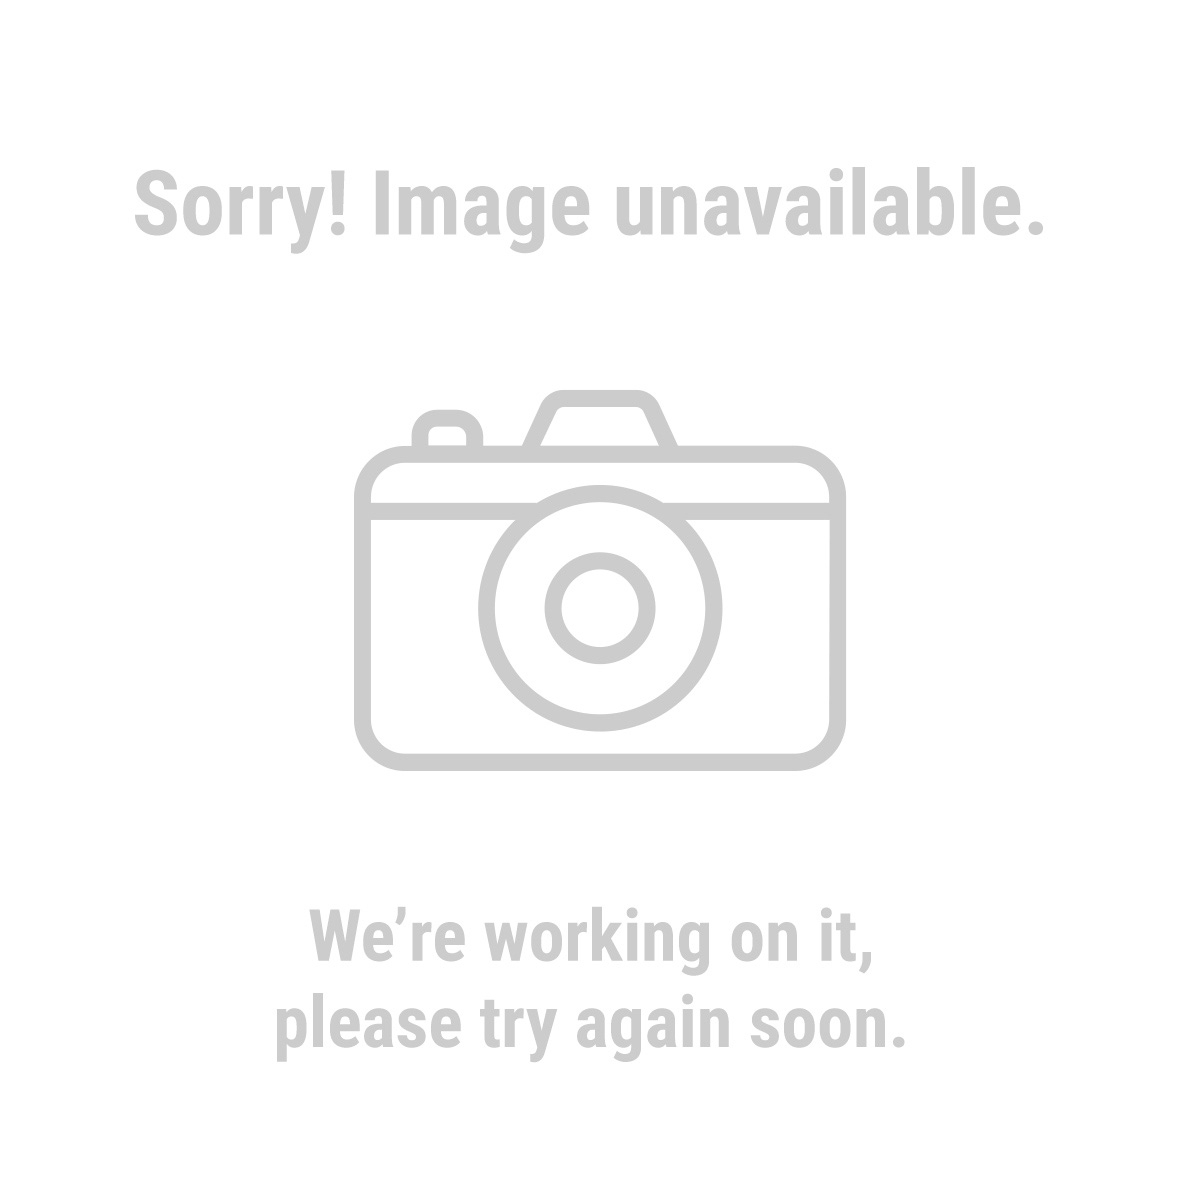 Central Machinery® 61728 1 in. x 30 in. Belt Sander